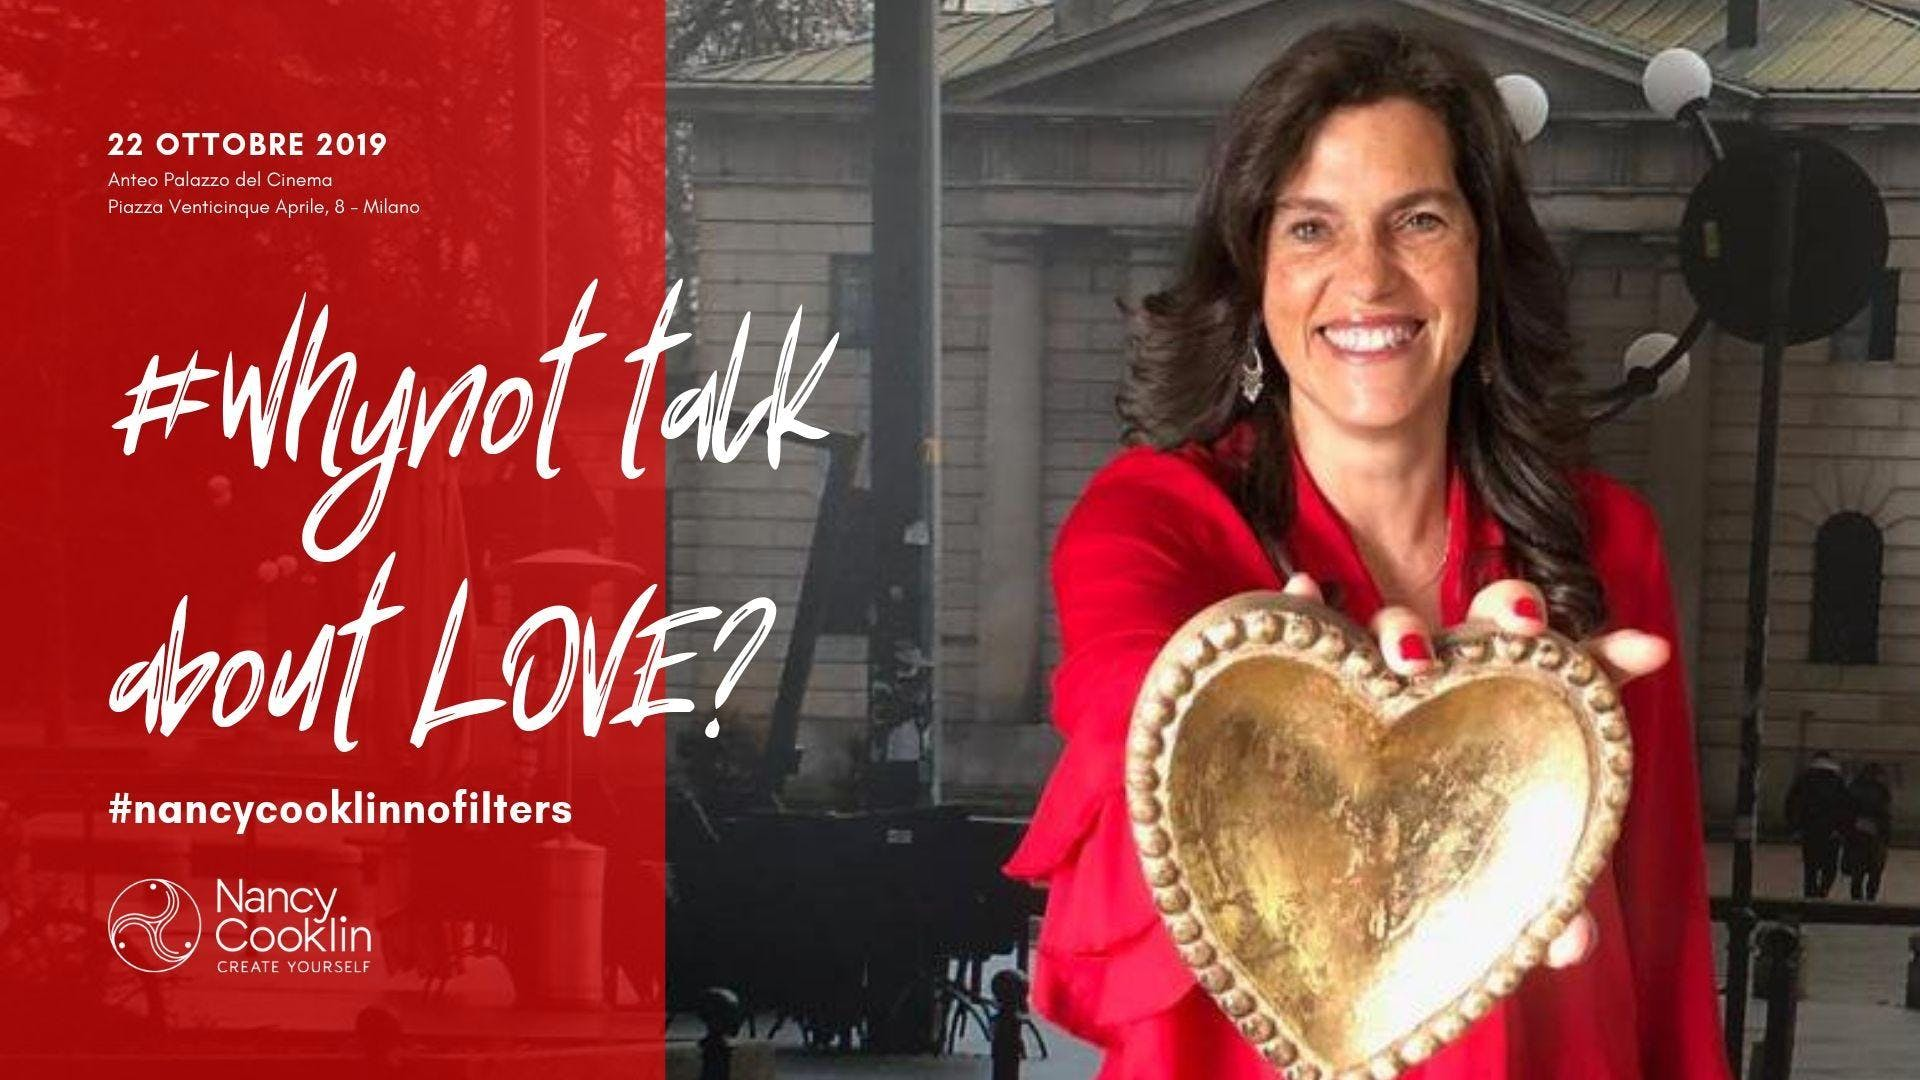 #Whynot talk about LOVE?